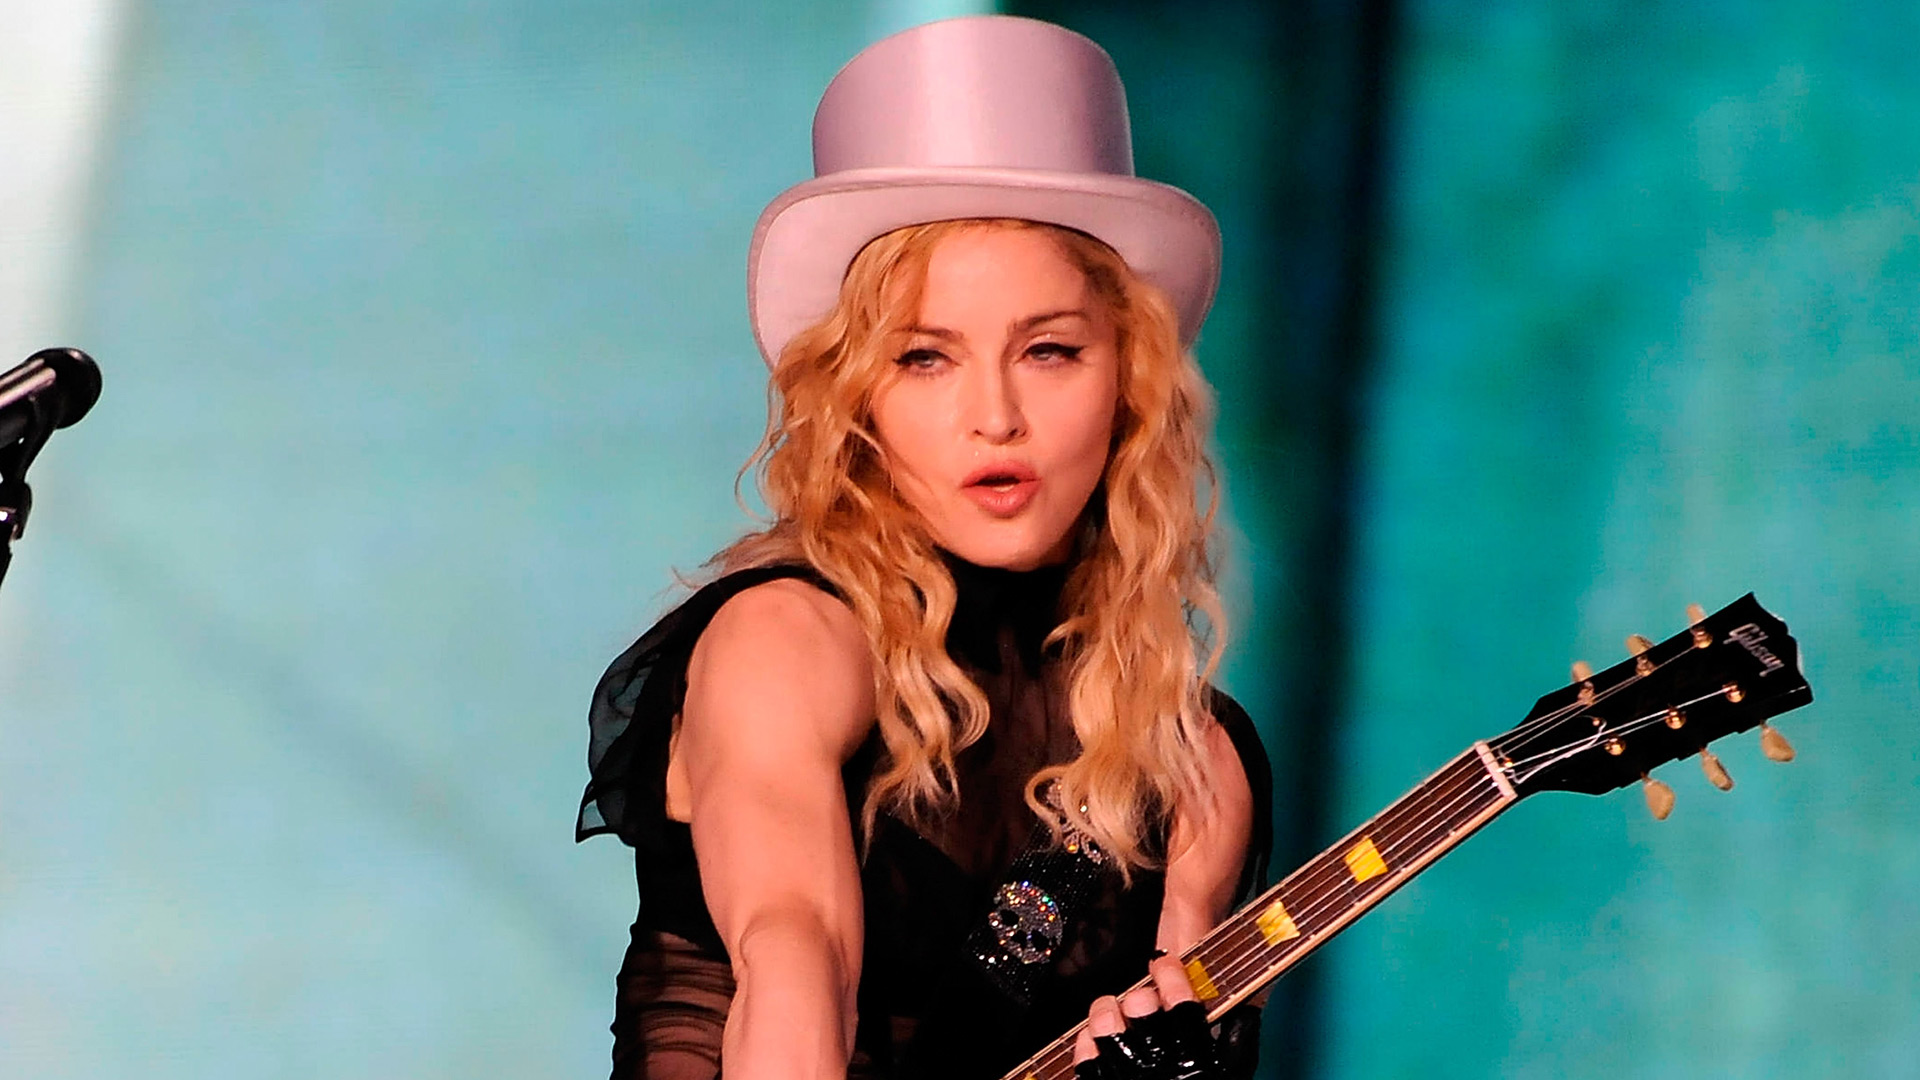 August 23, 2008: Madonna Kicked off Her Record Breaking Sticky & Sweet Tour